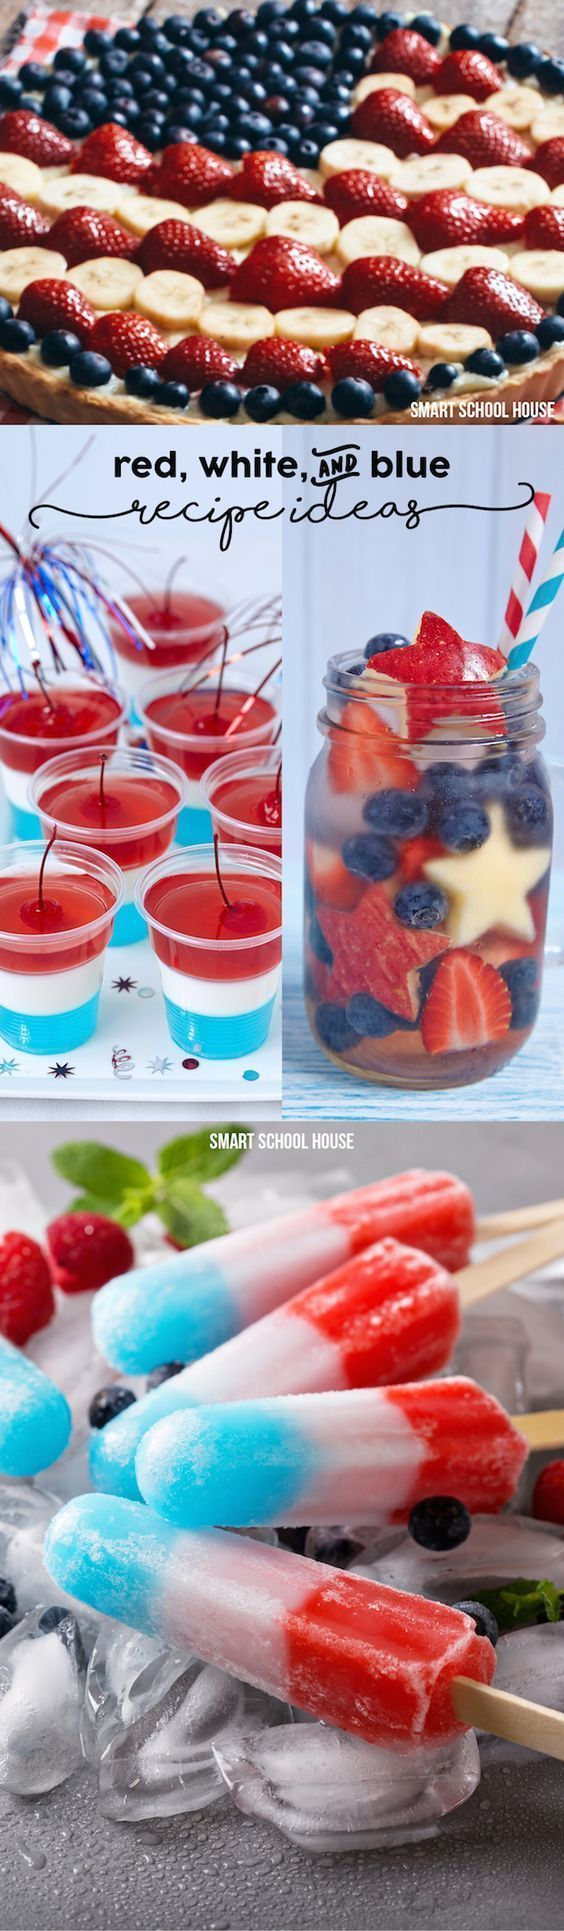 Red, white, and blue recipe ideas for the 4th of July! Desserts and